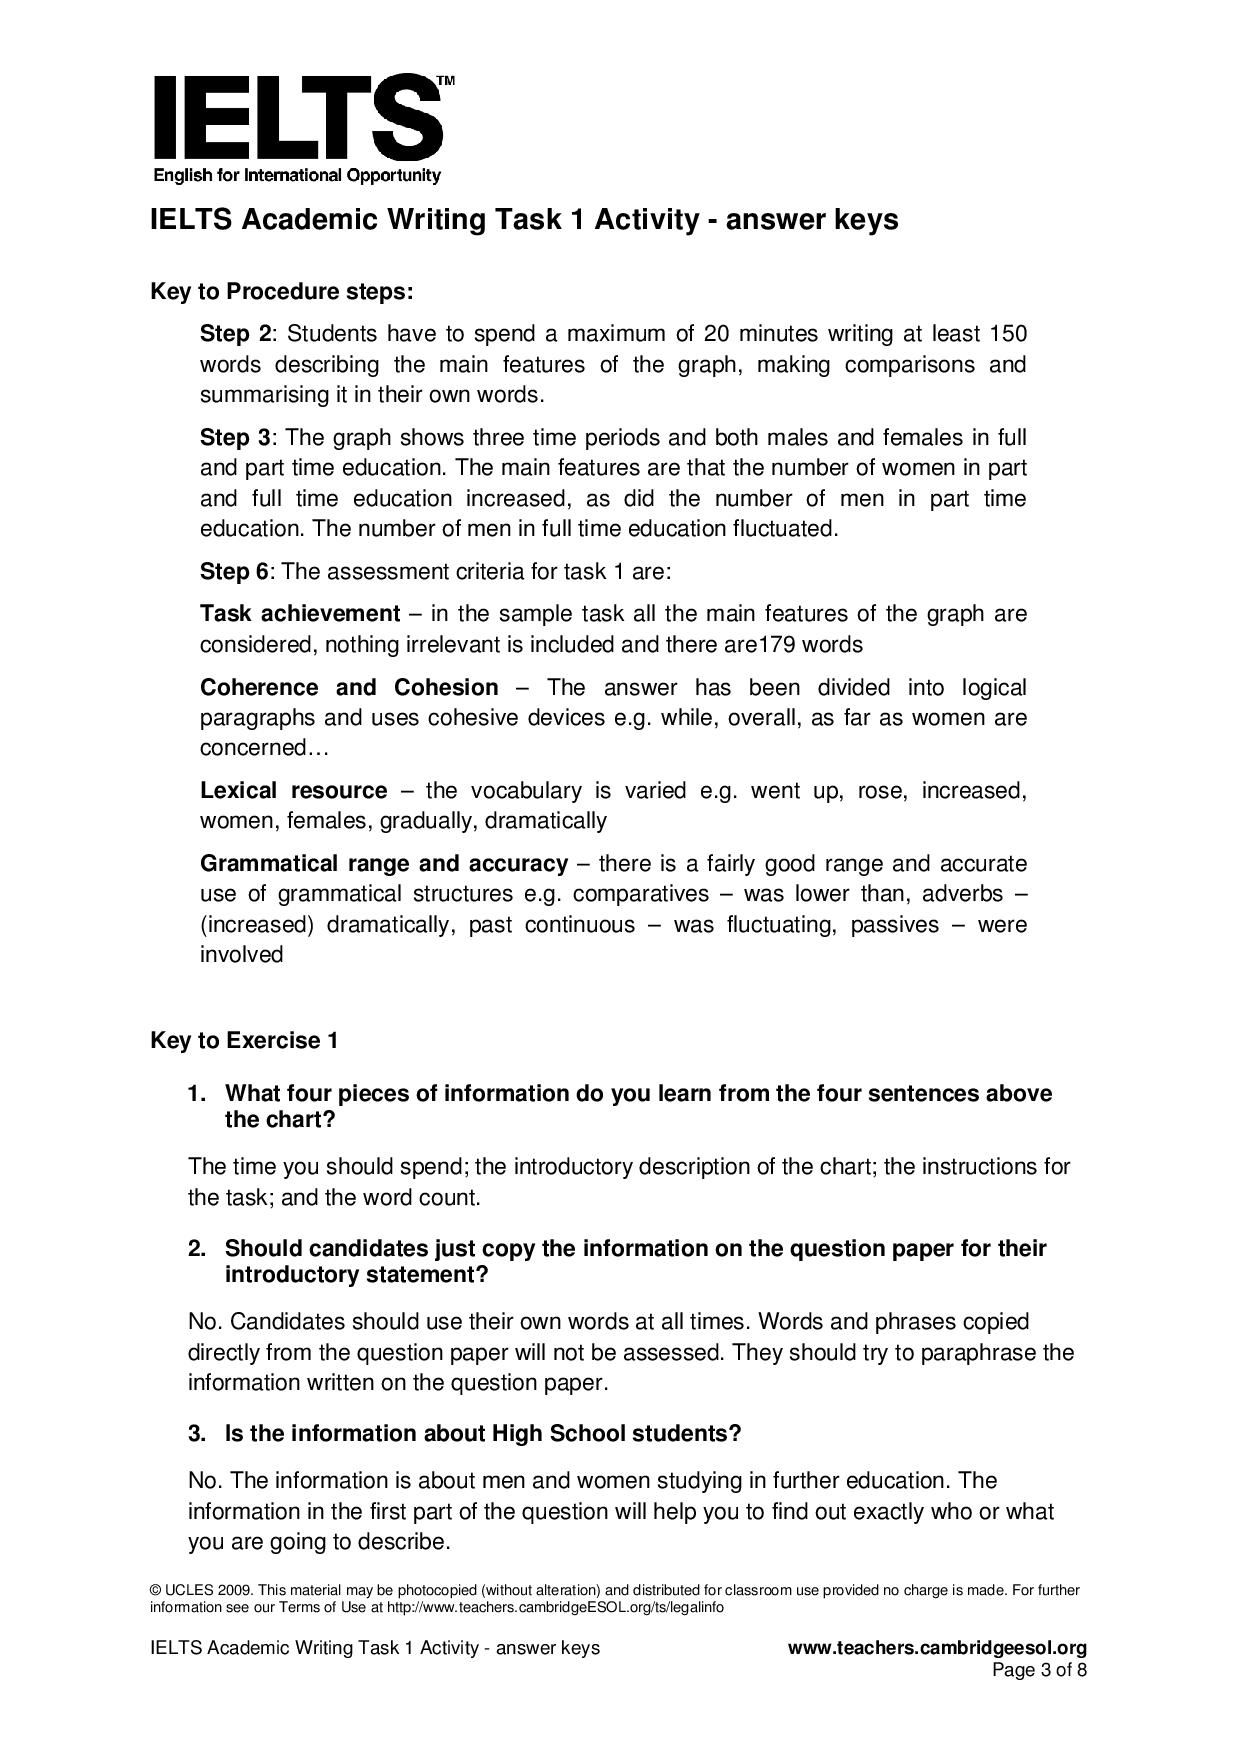 ielts essay question best images about ielts improve english  ielts academic writing task 1 activity answer keys page 1 ielts academic writing task 1 activity